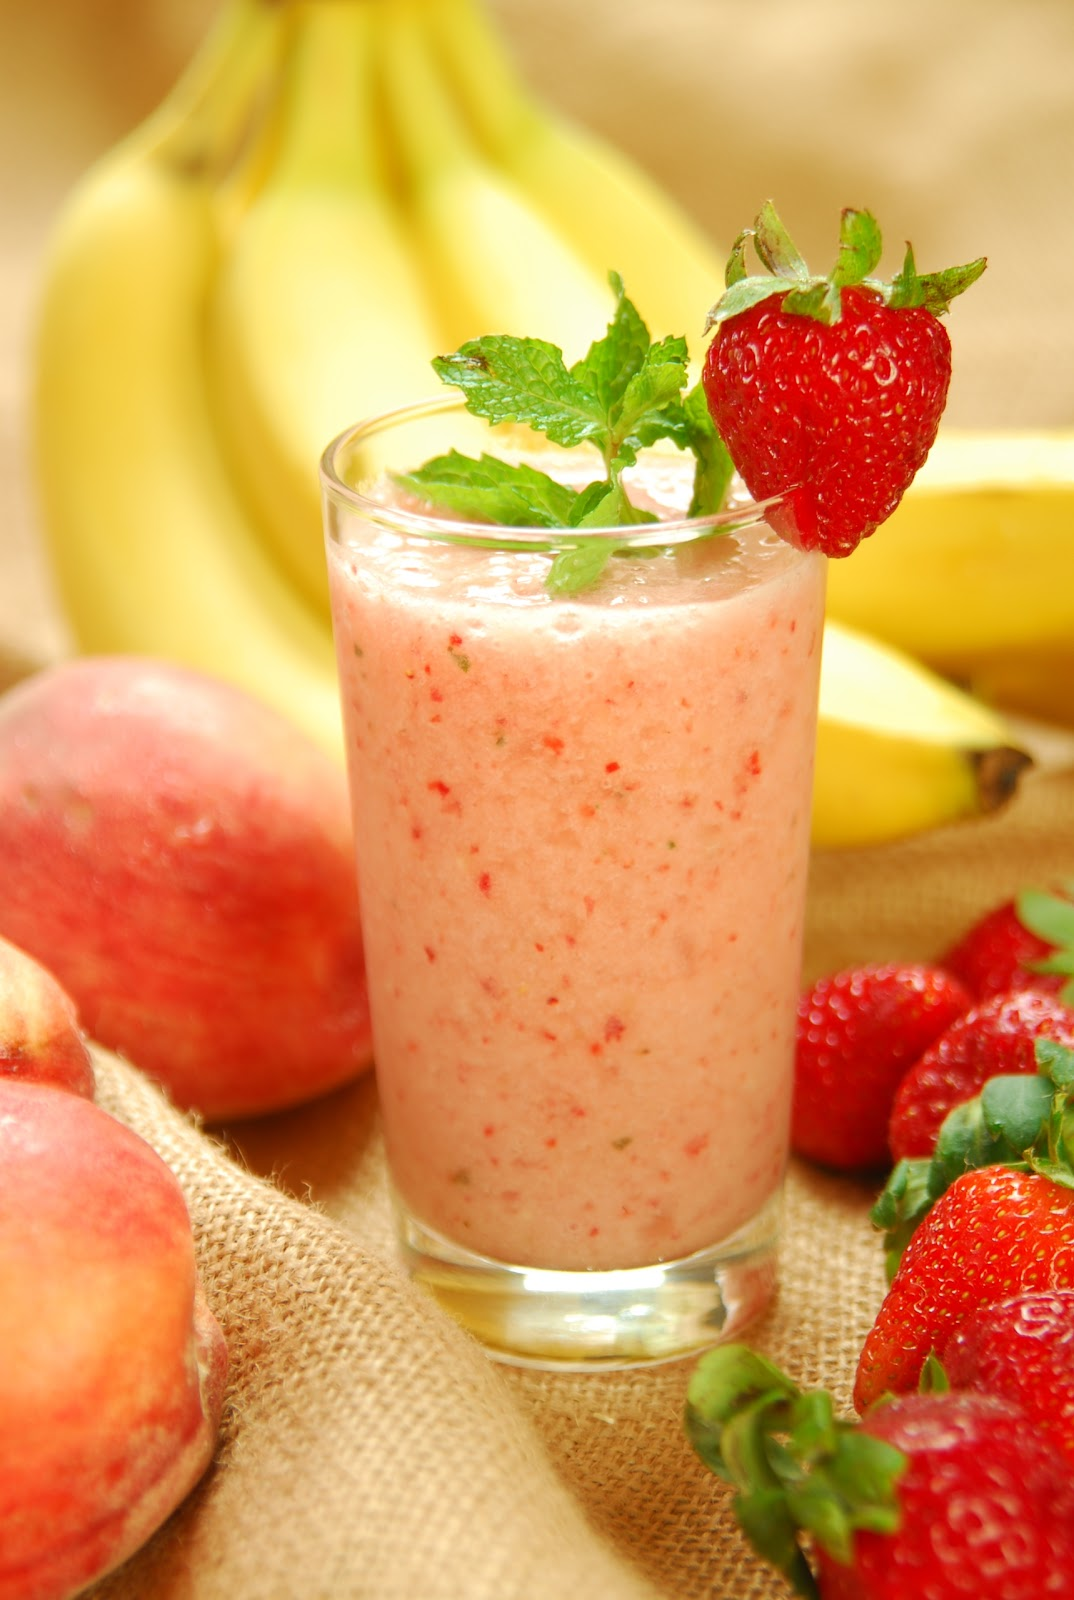 Fruit Smoothie Information on Happy Healthy News